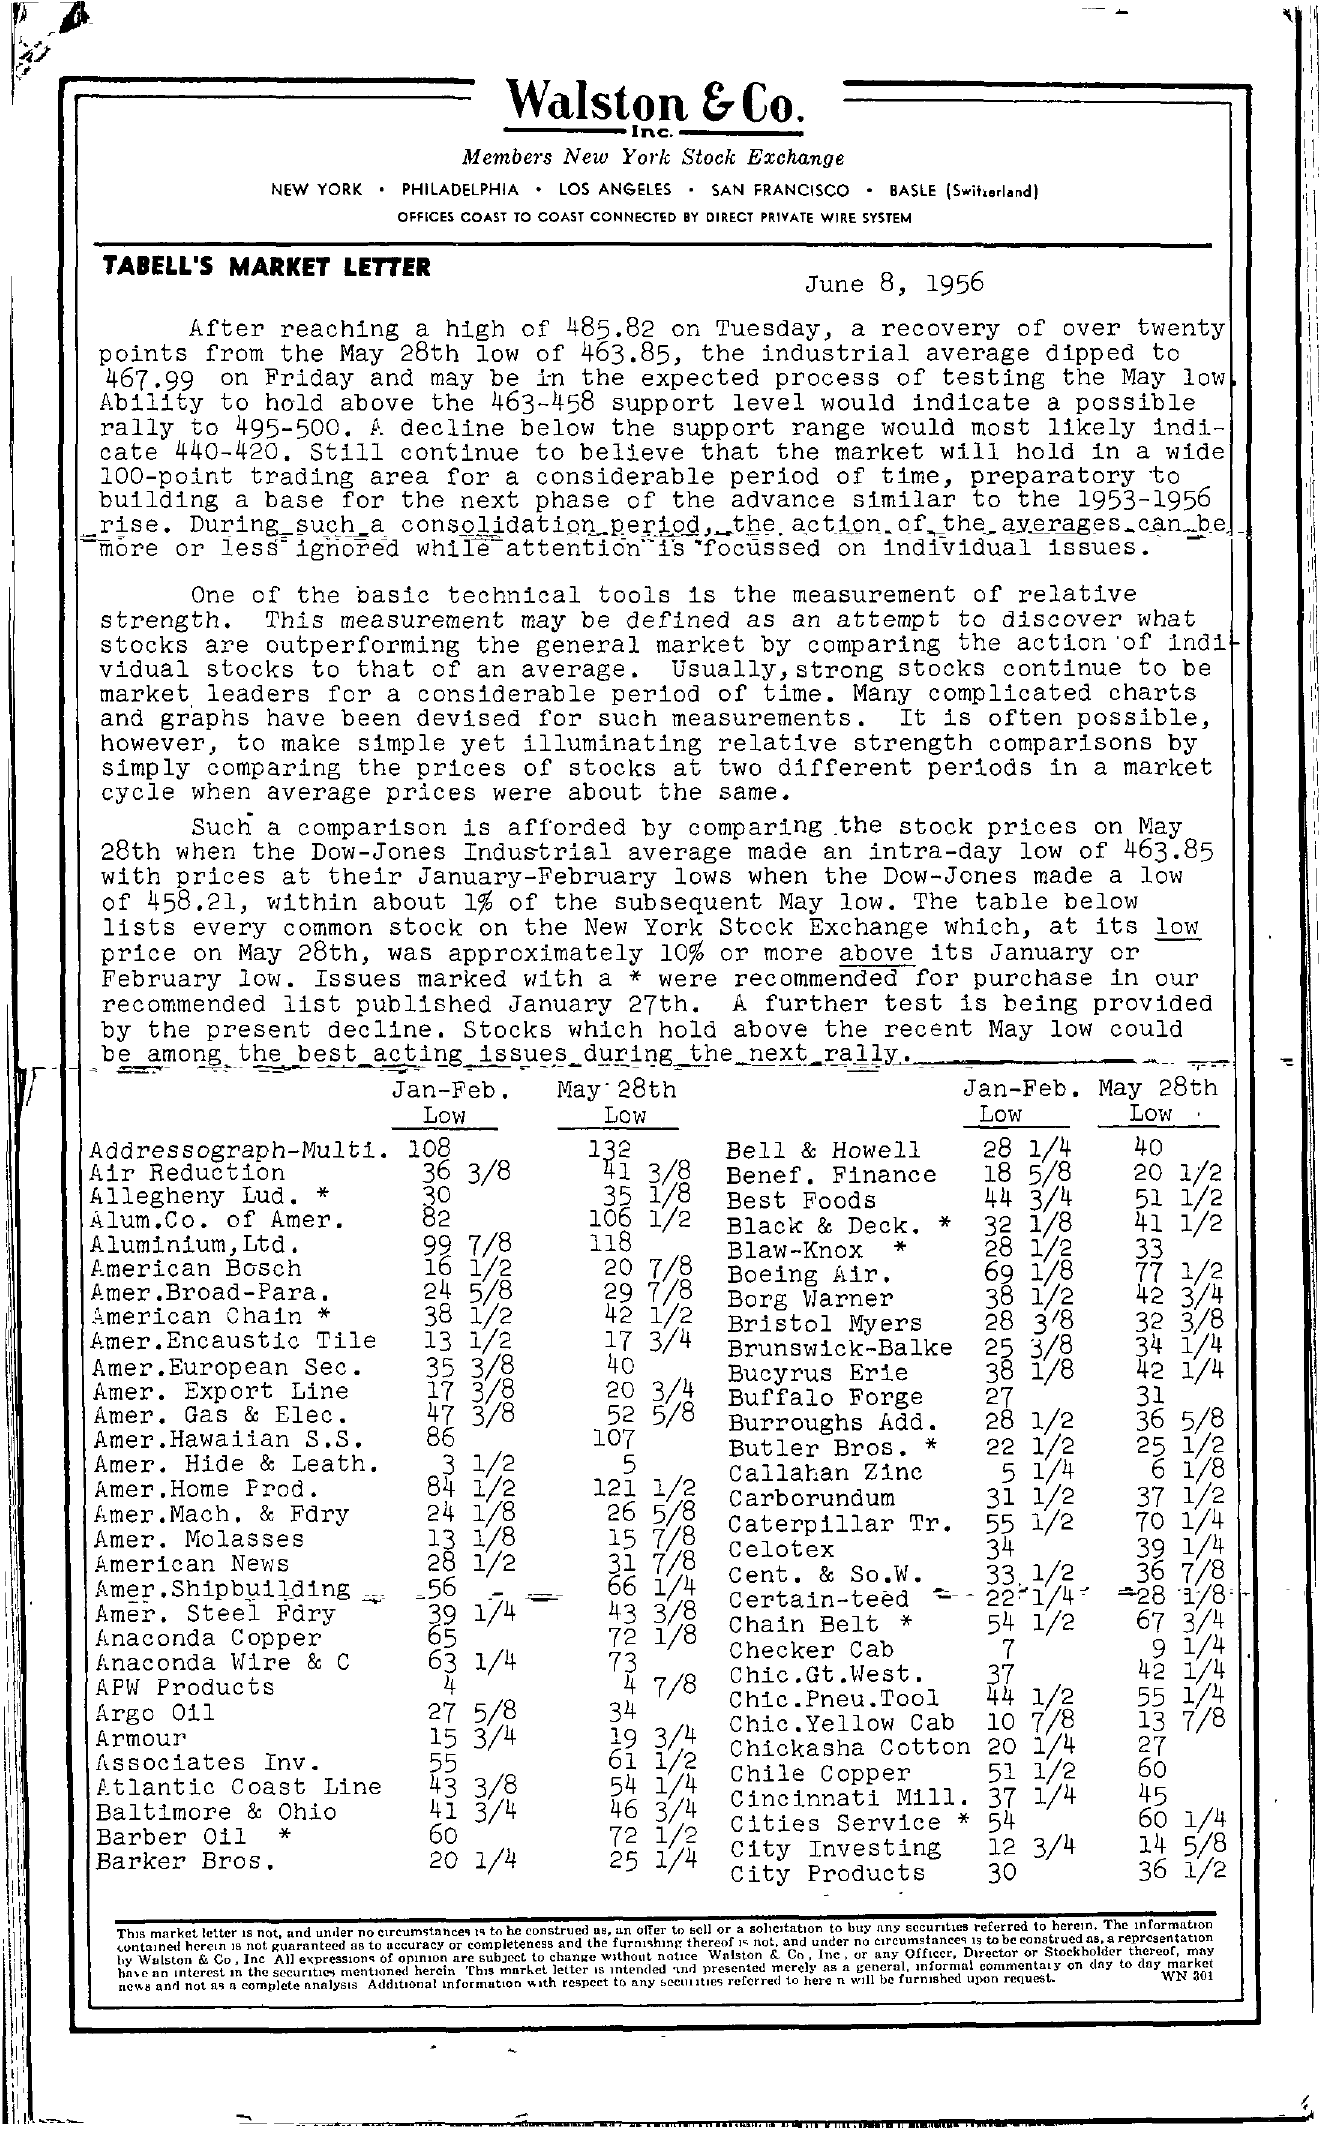 Tabell's Market Letter - June 08, 1956 page 1